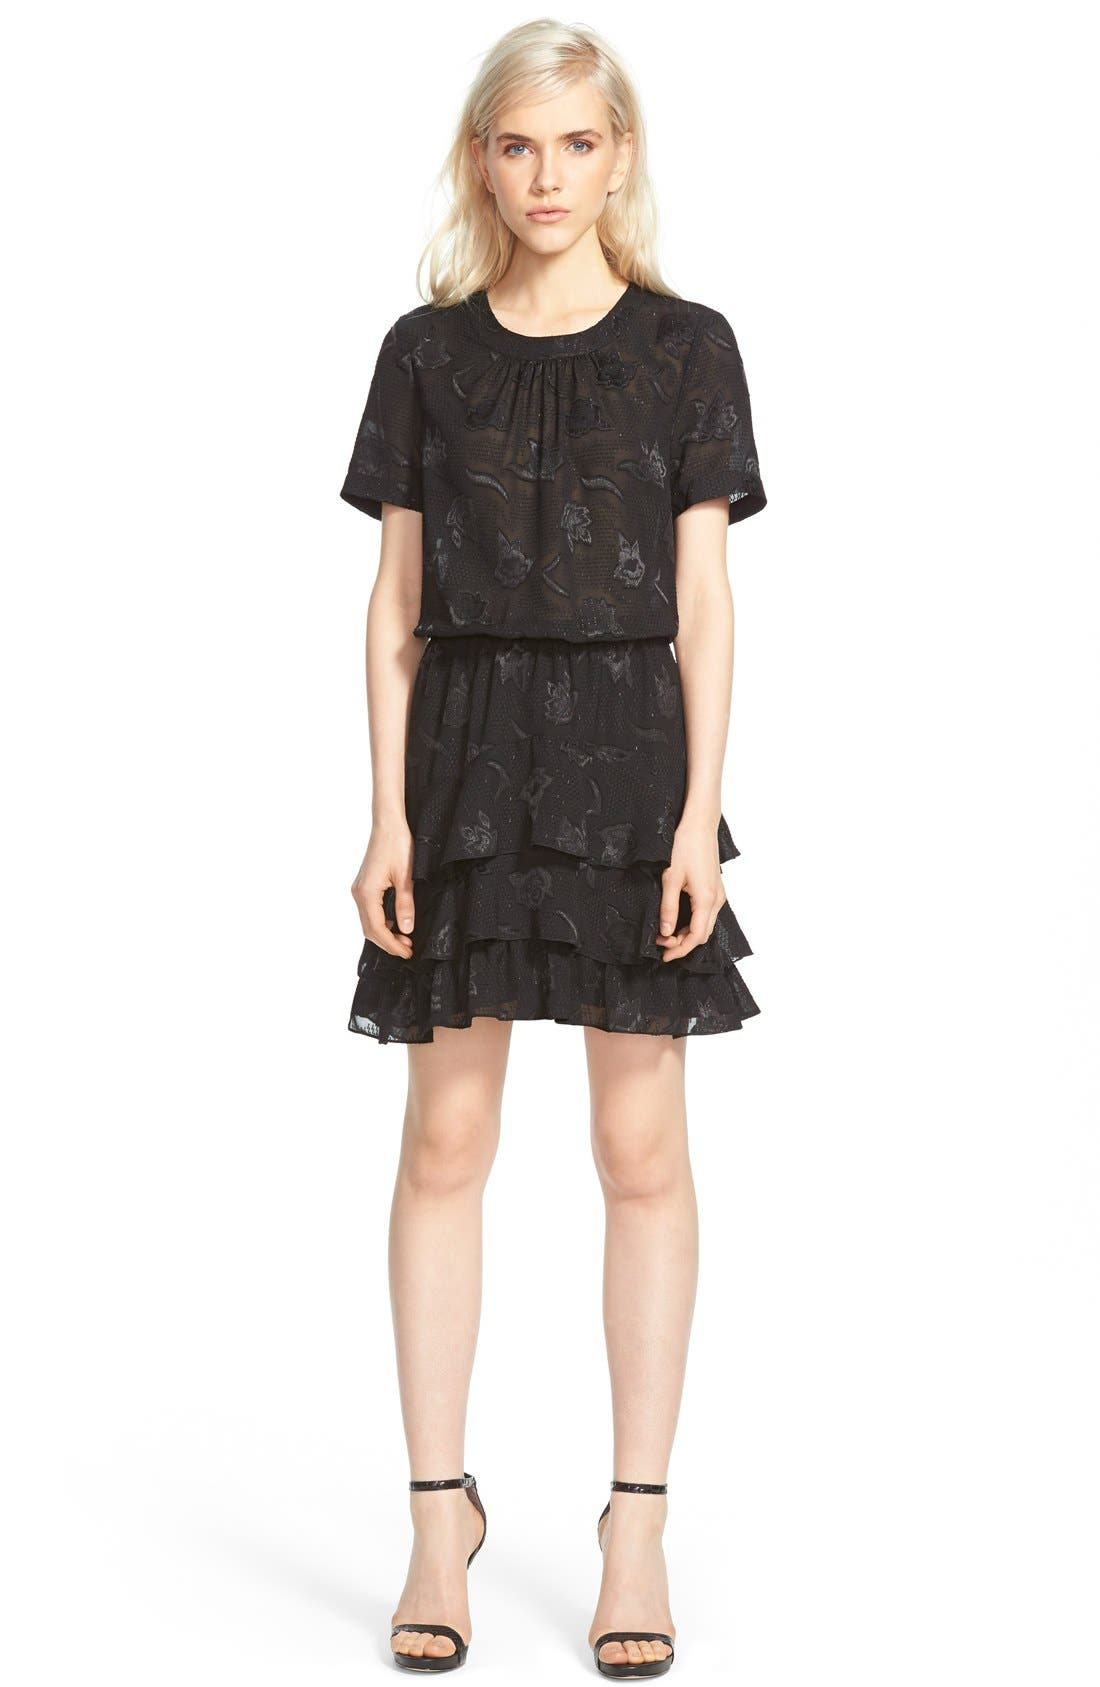 Alternate Image 1 Selected - cooper & ella 'Phoebe' Ruffle Blouson Dress